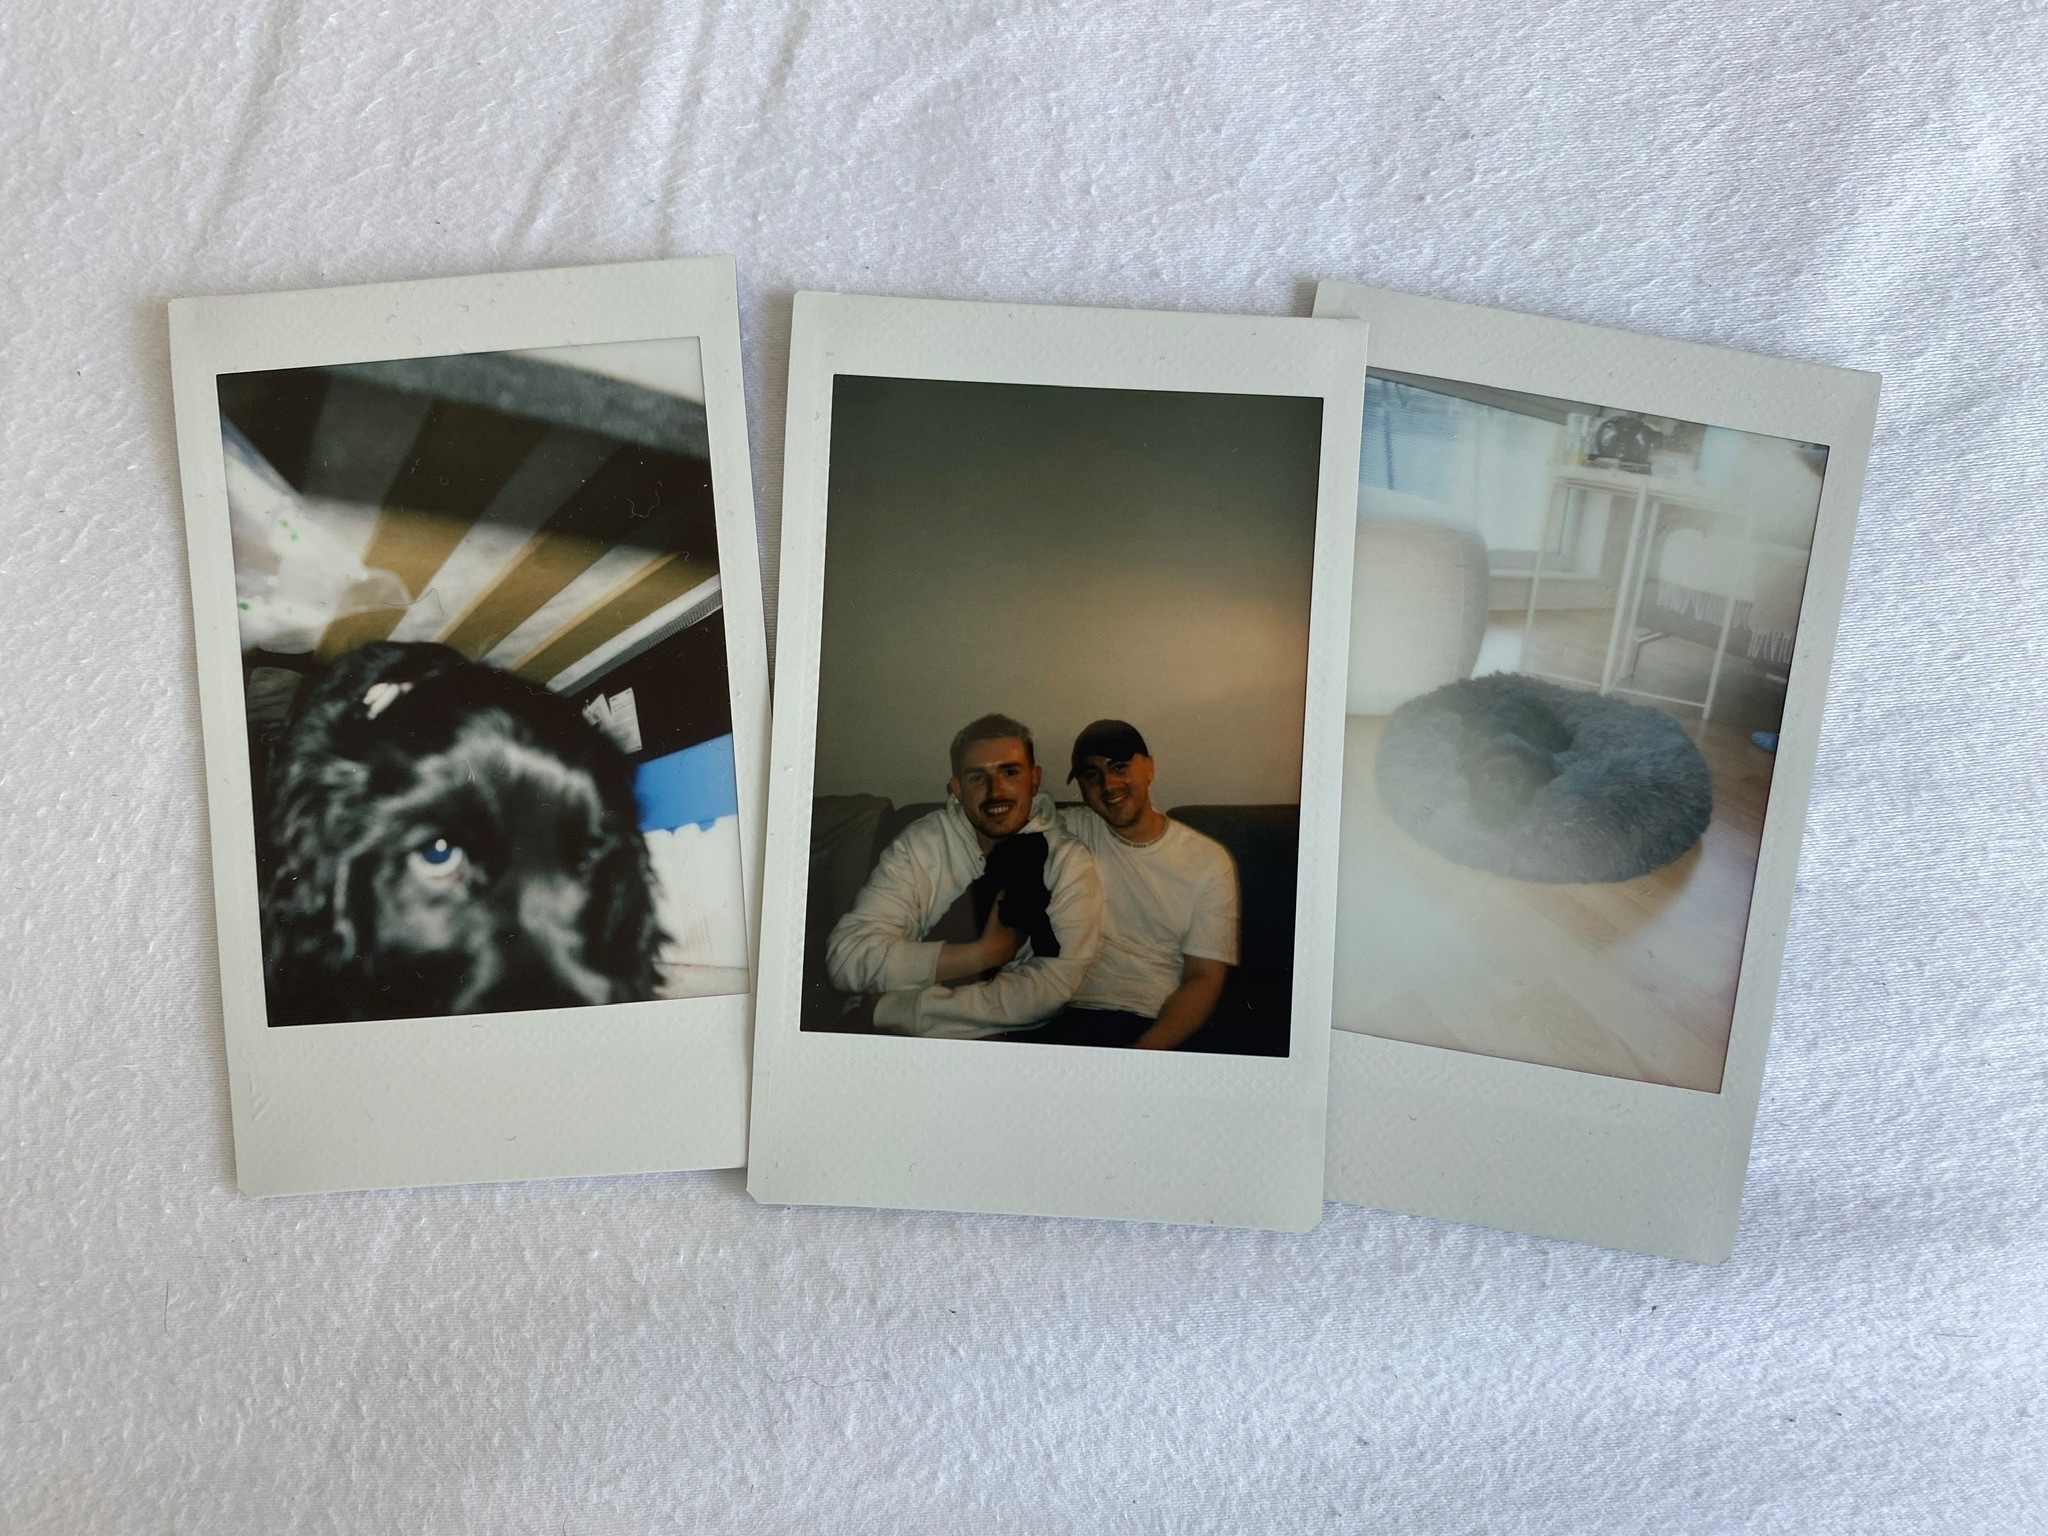 An image of three polaroid photographs. One showing Olive, a black Cocker Spaniel puppy, one with Olive, Fraser and his partner and one with Olive on a dog bed.